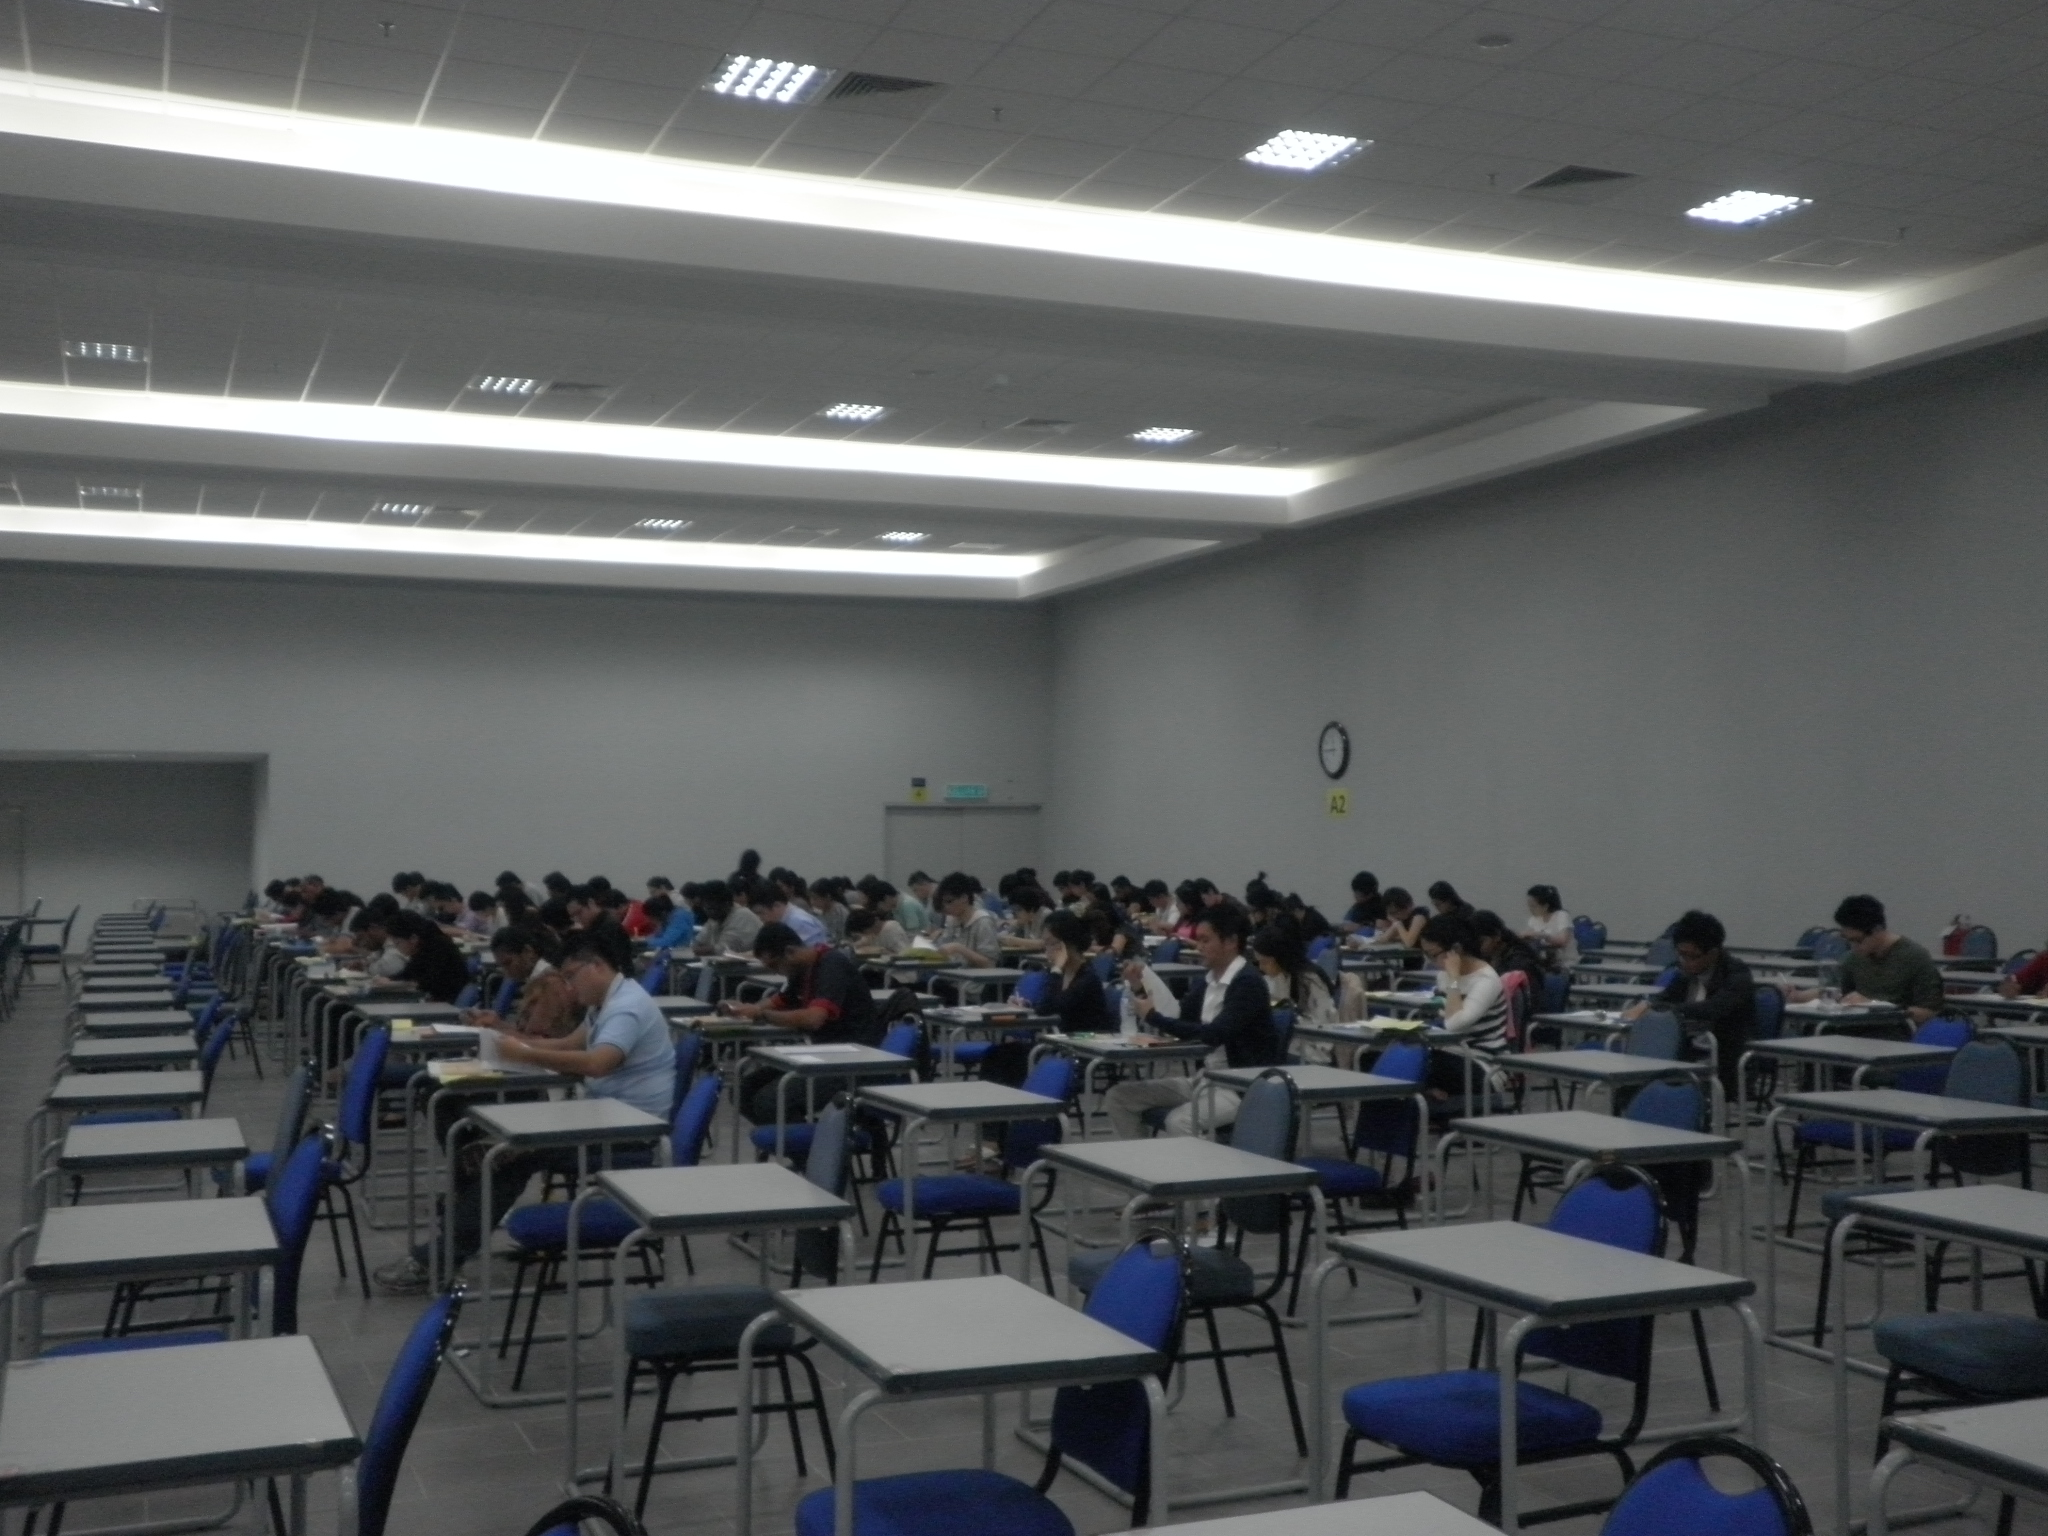 CLP Examination (9 - 18 July 2012) at Hall 1, Examination Building, University Malaya, Kuala Lumpur